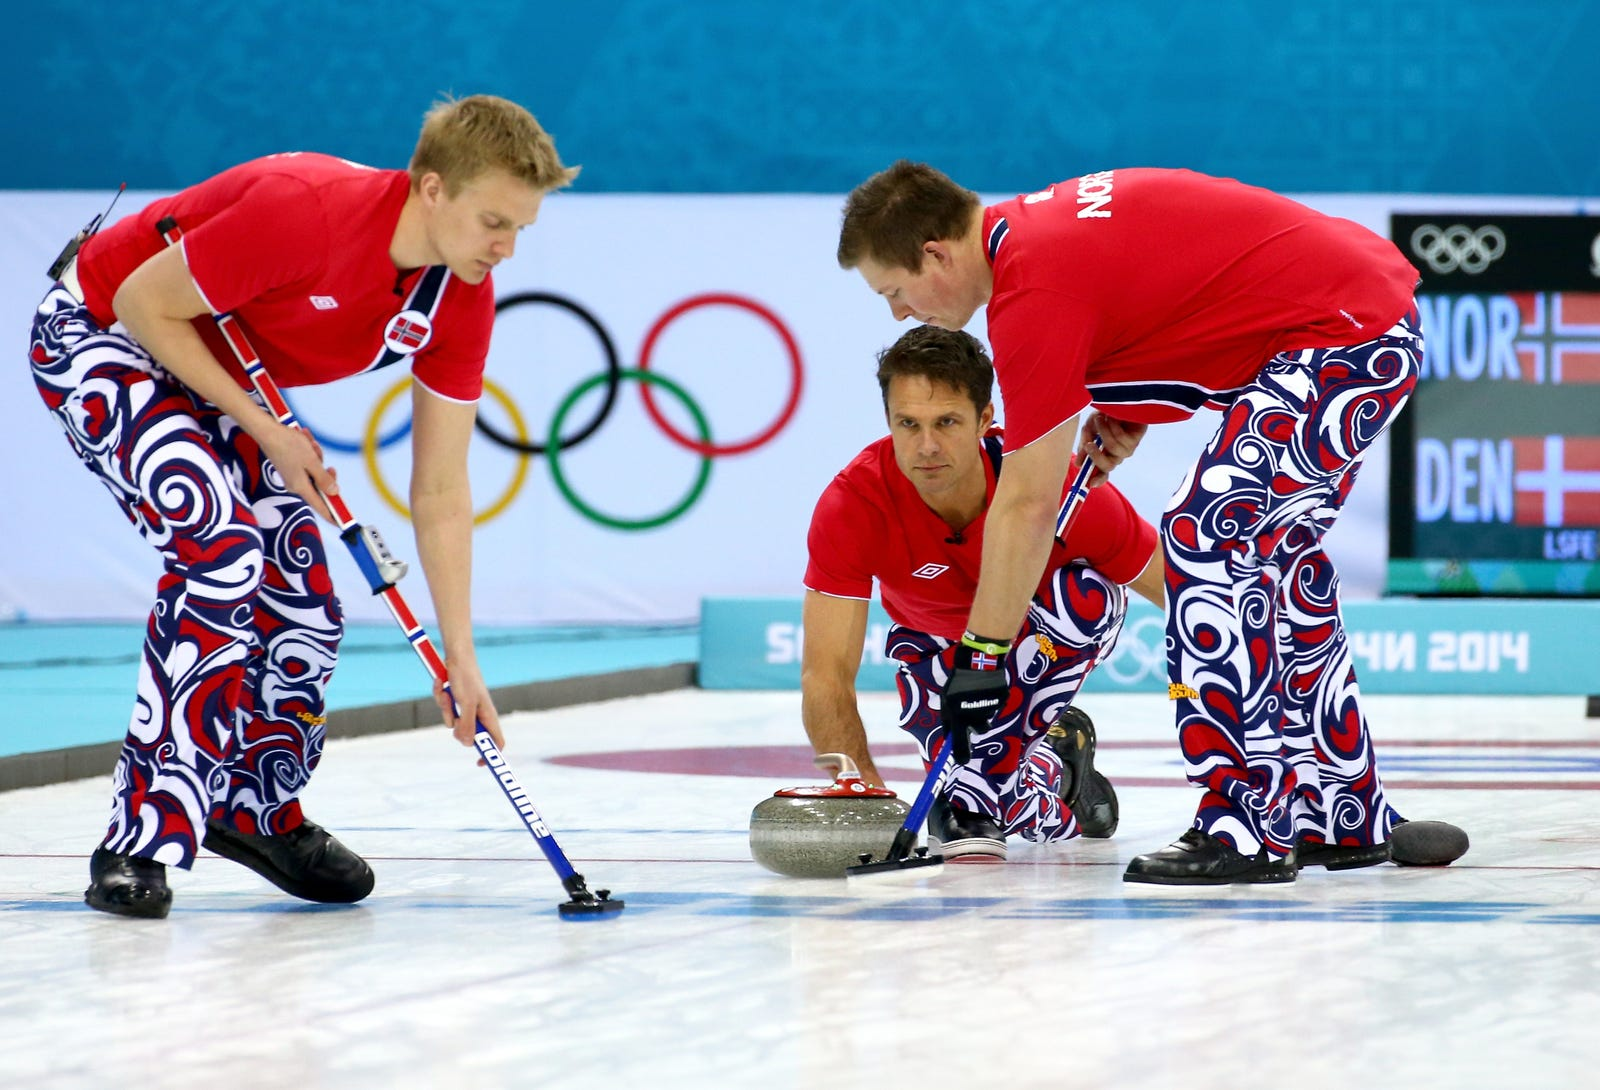 Illustration for article titled Thomas Ulsruds Norwegian Team Is Disbanding After 12 Years Of Curling, 10 Years Of Outrageous Pants